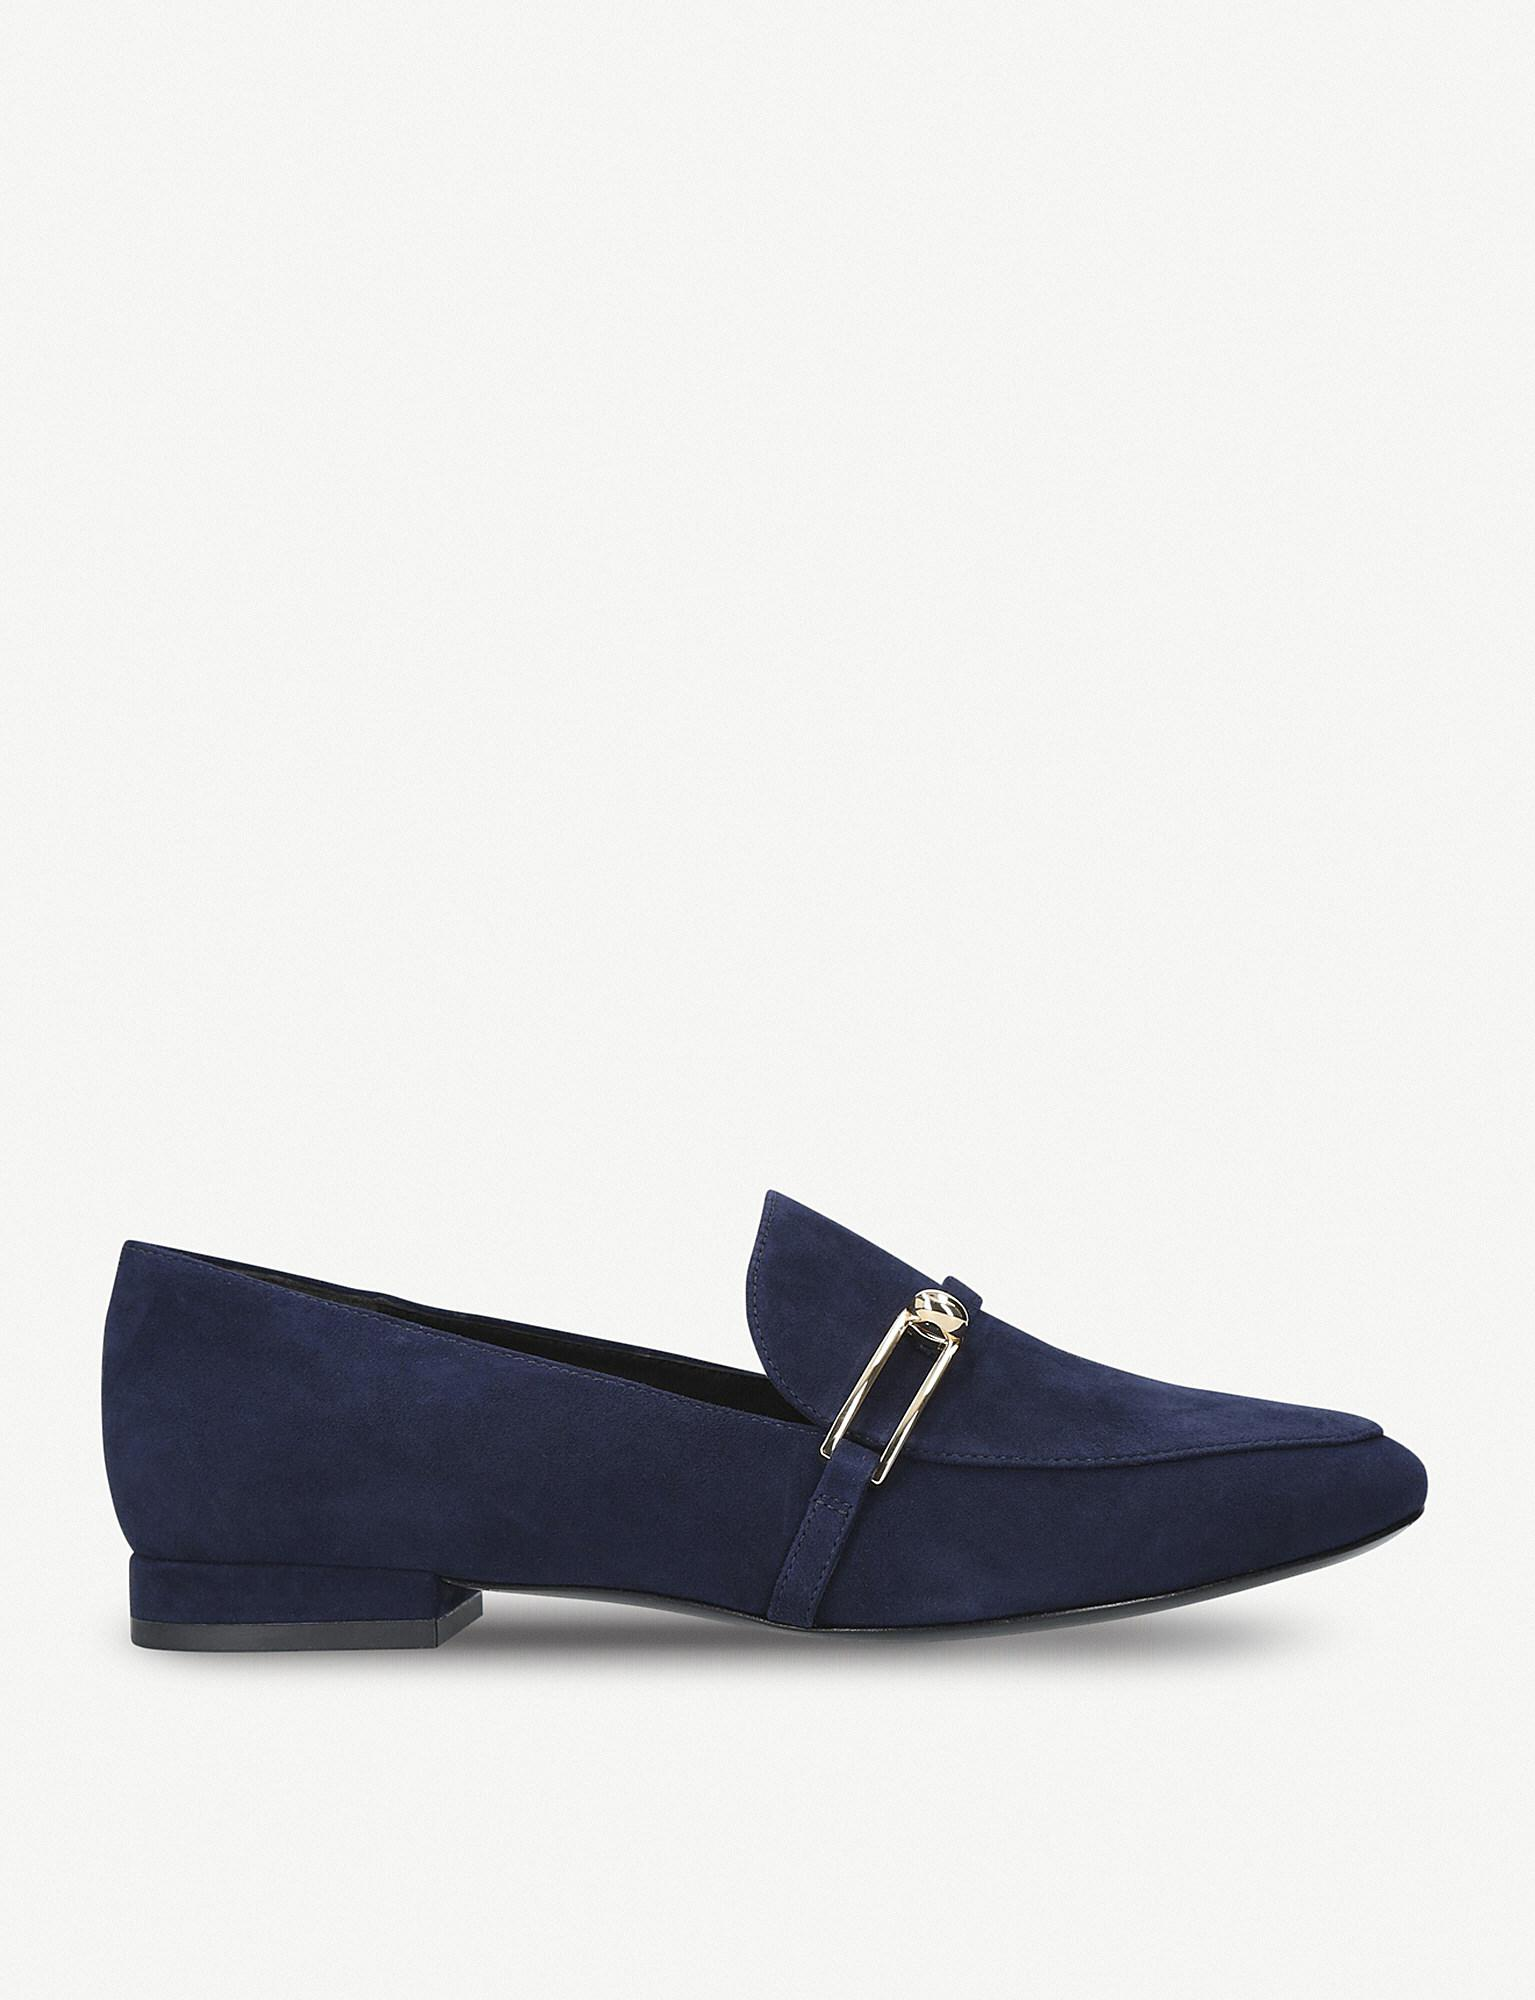 Stella Luna Leather Loafers buy cheap low shipping fee sale latest collections NmsmLfImo